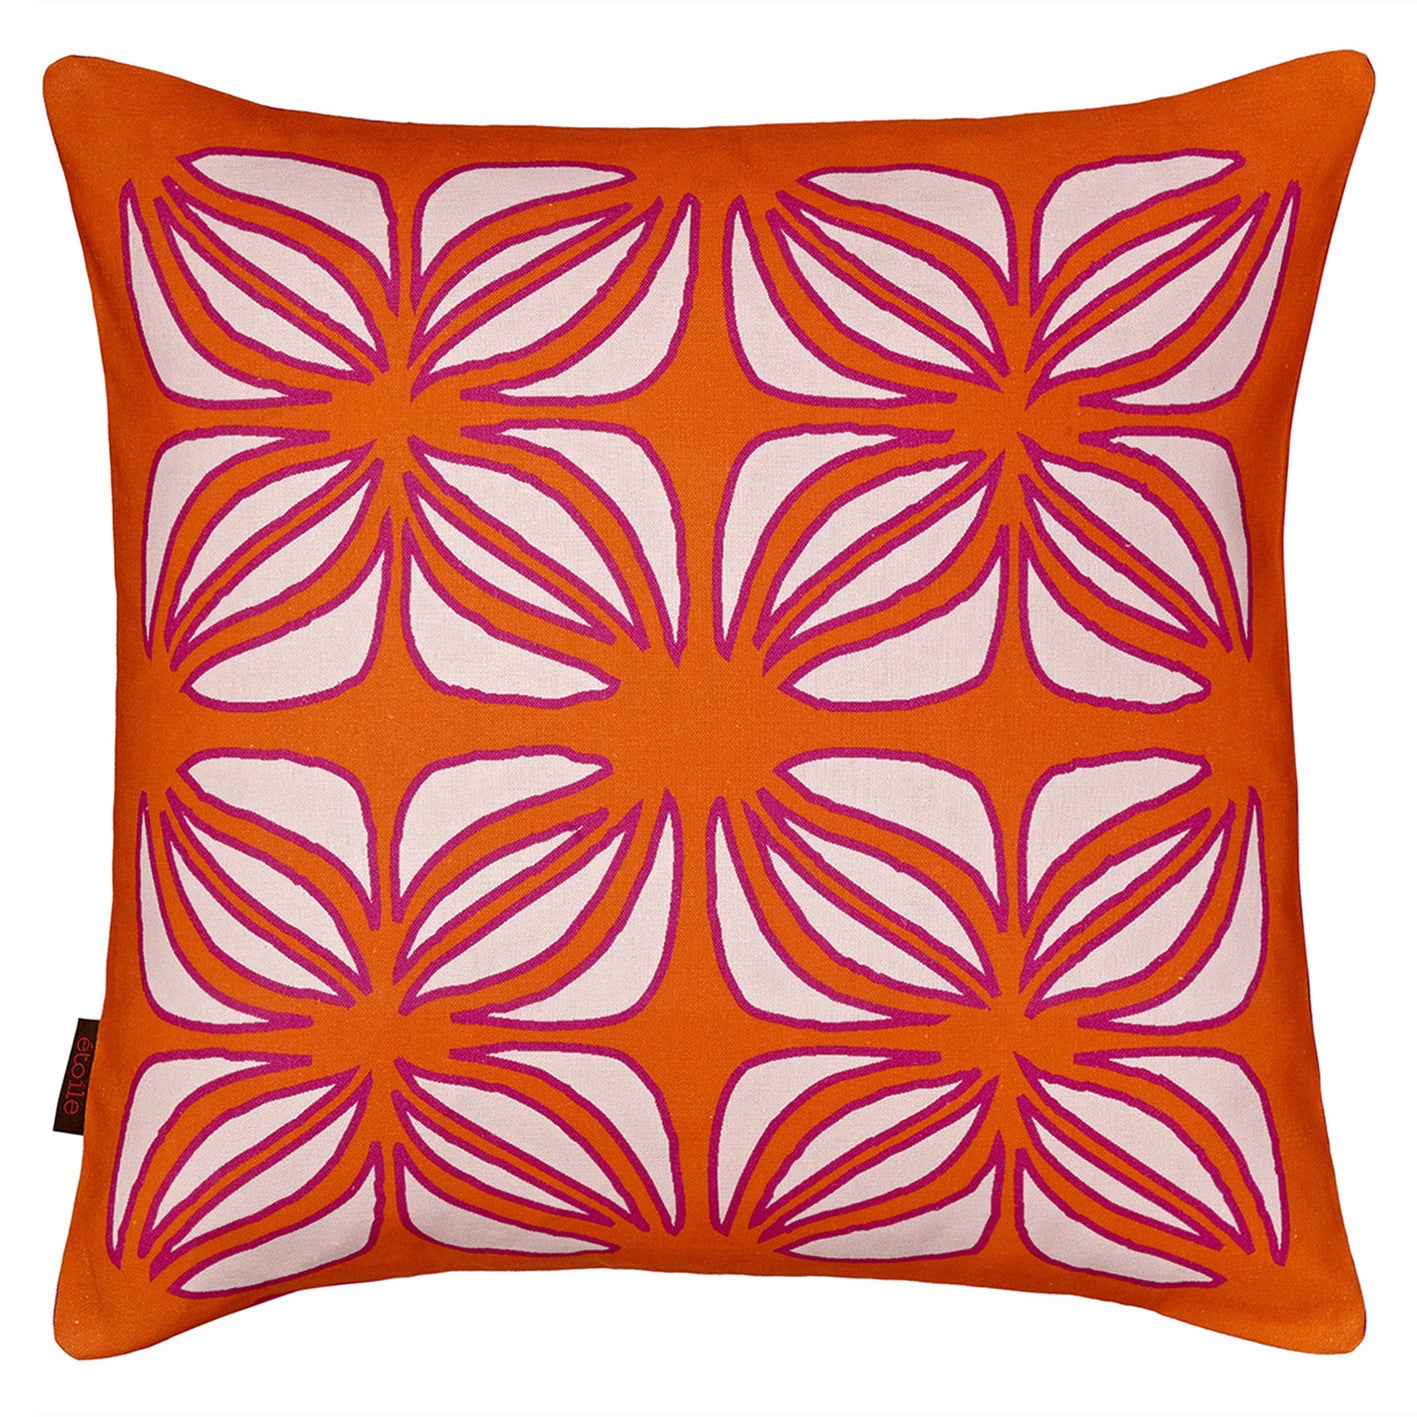 Nina Graphic Pattern Printed Linen Cotton Pillow in Pumpkin Orange